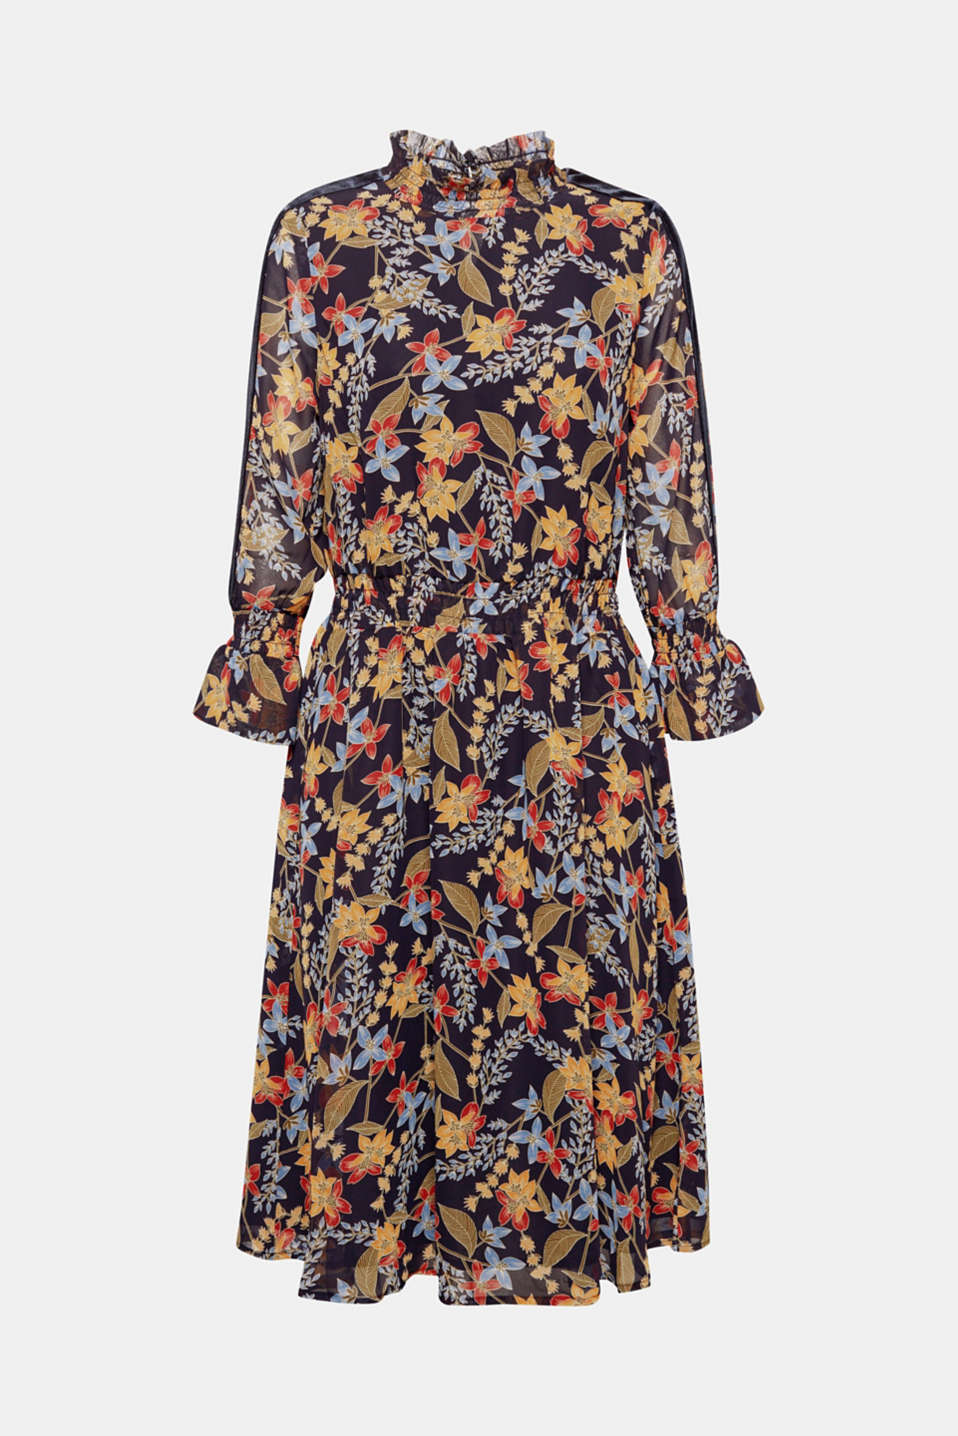 DESIGN EDITION: This dress is the perfect choice for romantic autumn looks with a stylish floral print on delicate chiffon coupled with elegant velvet details.